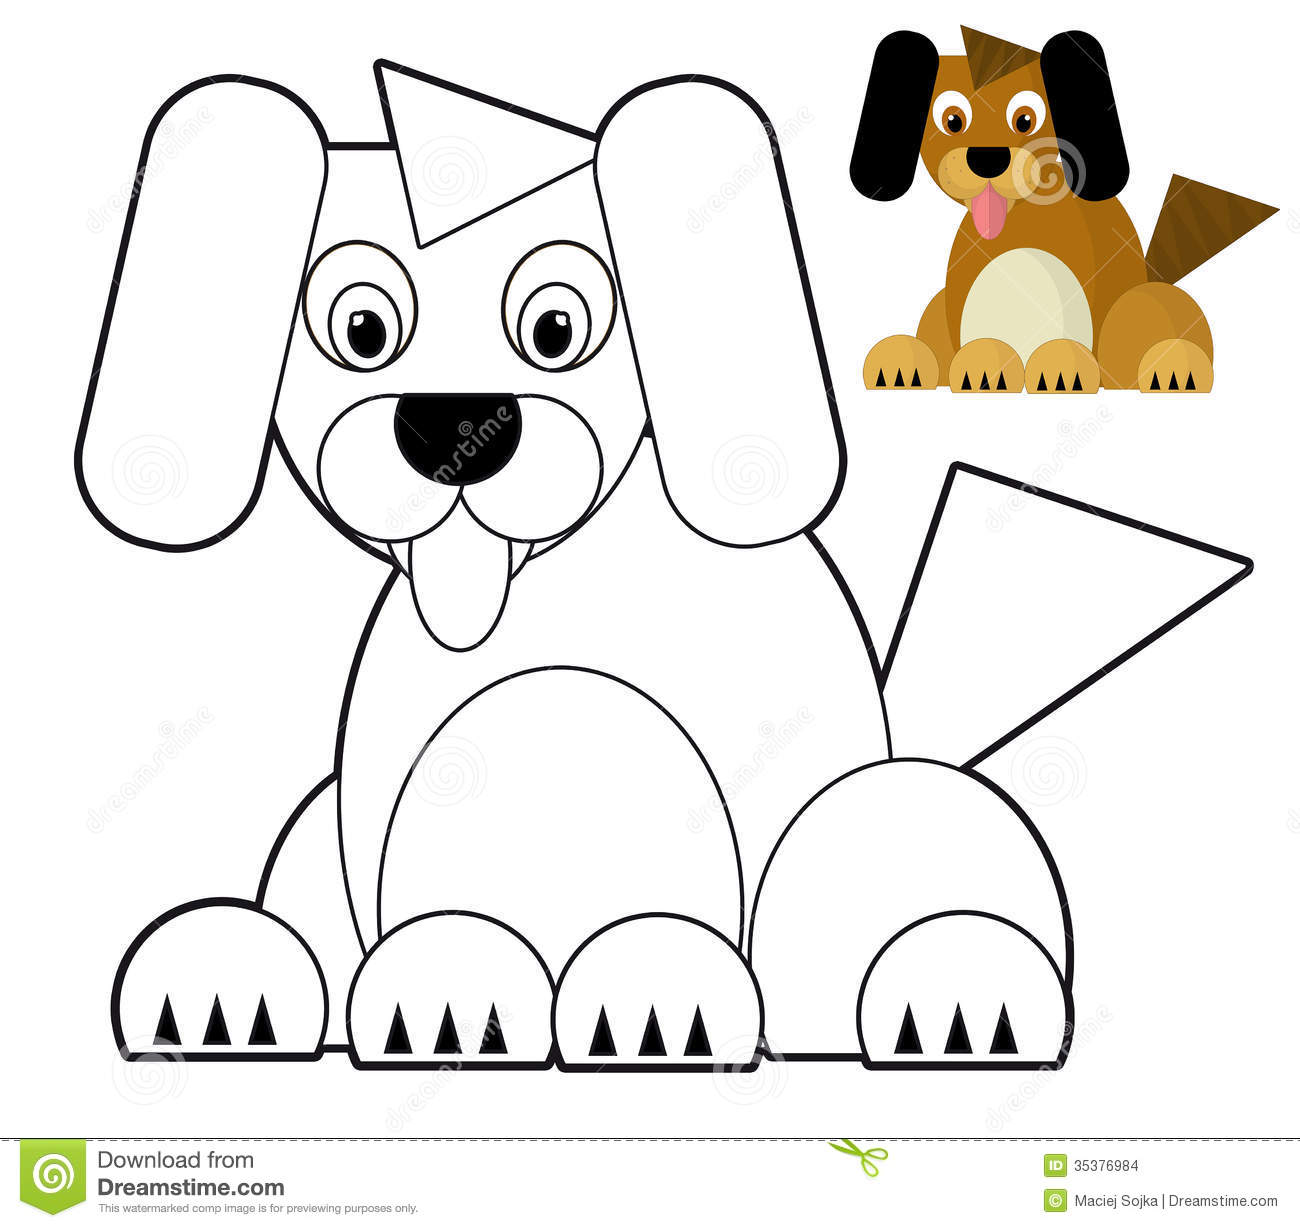 Cartoon Animal Coloring Page Illustration For The Children Stock